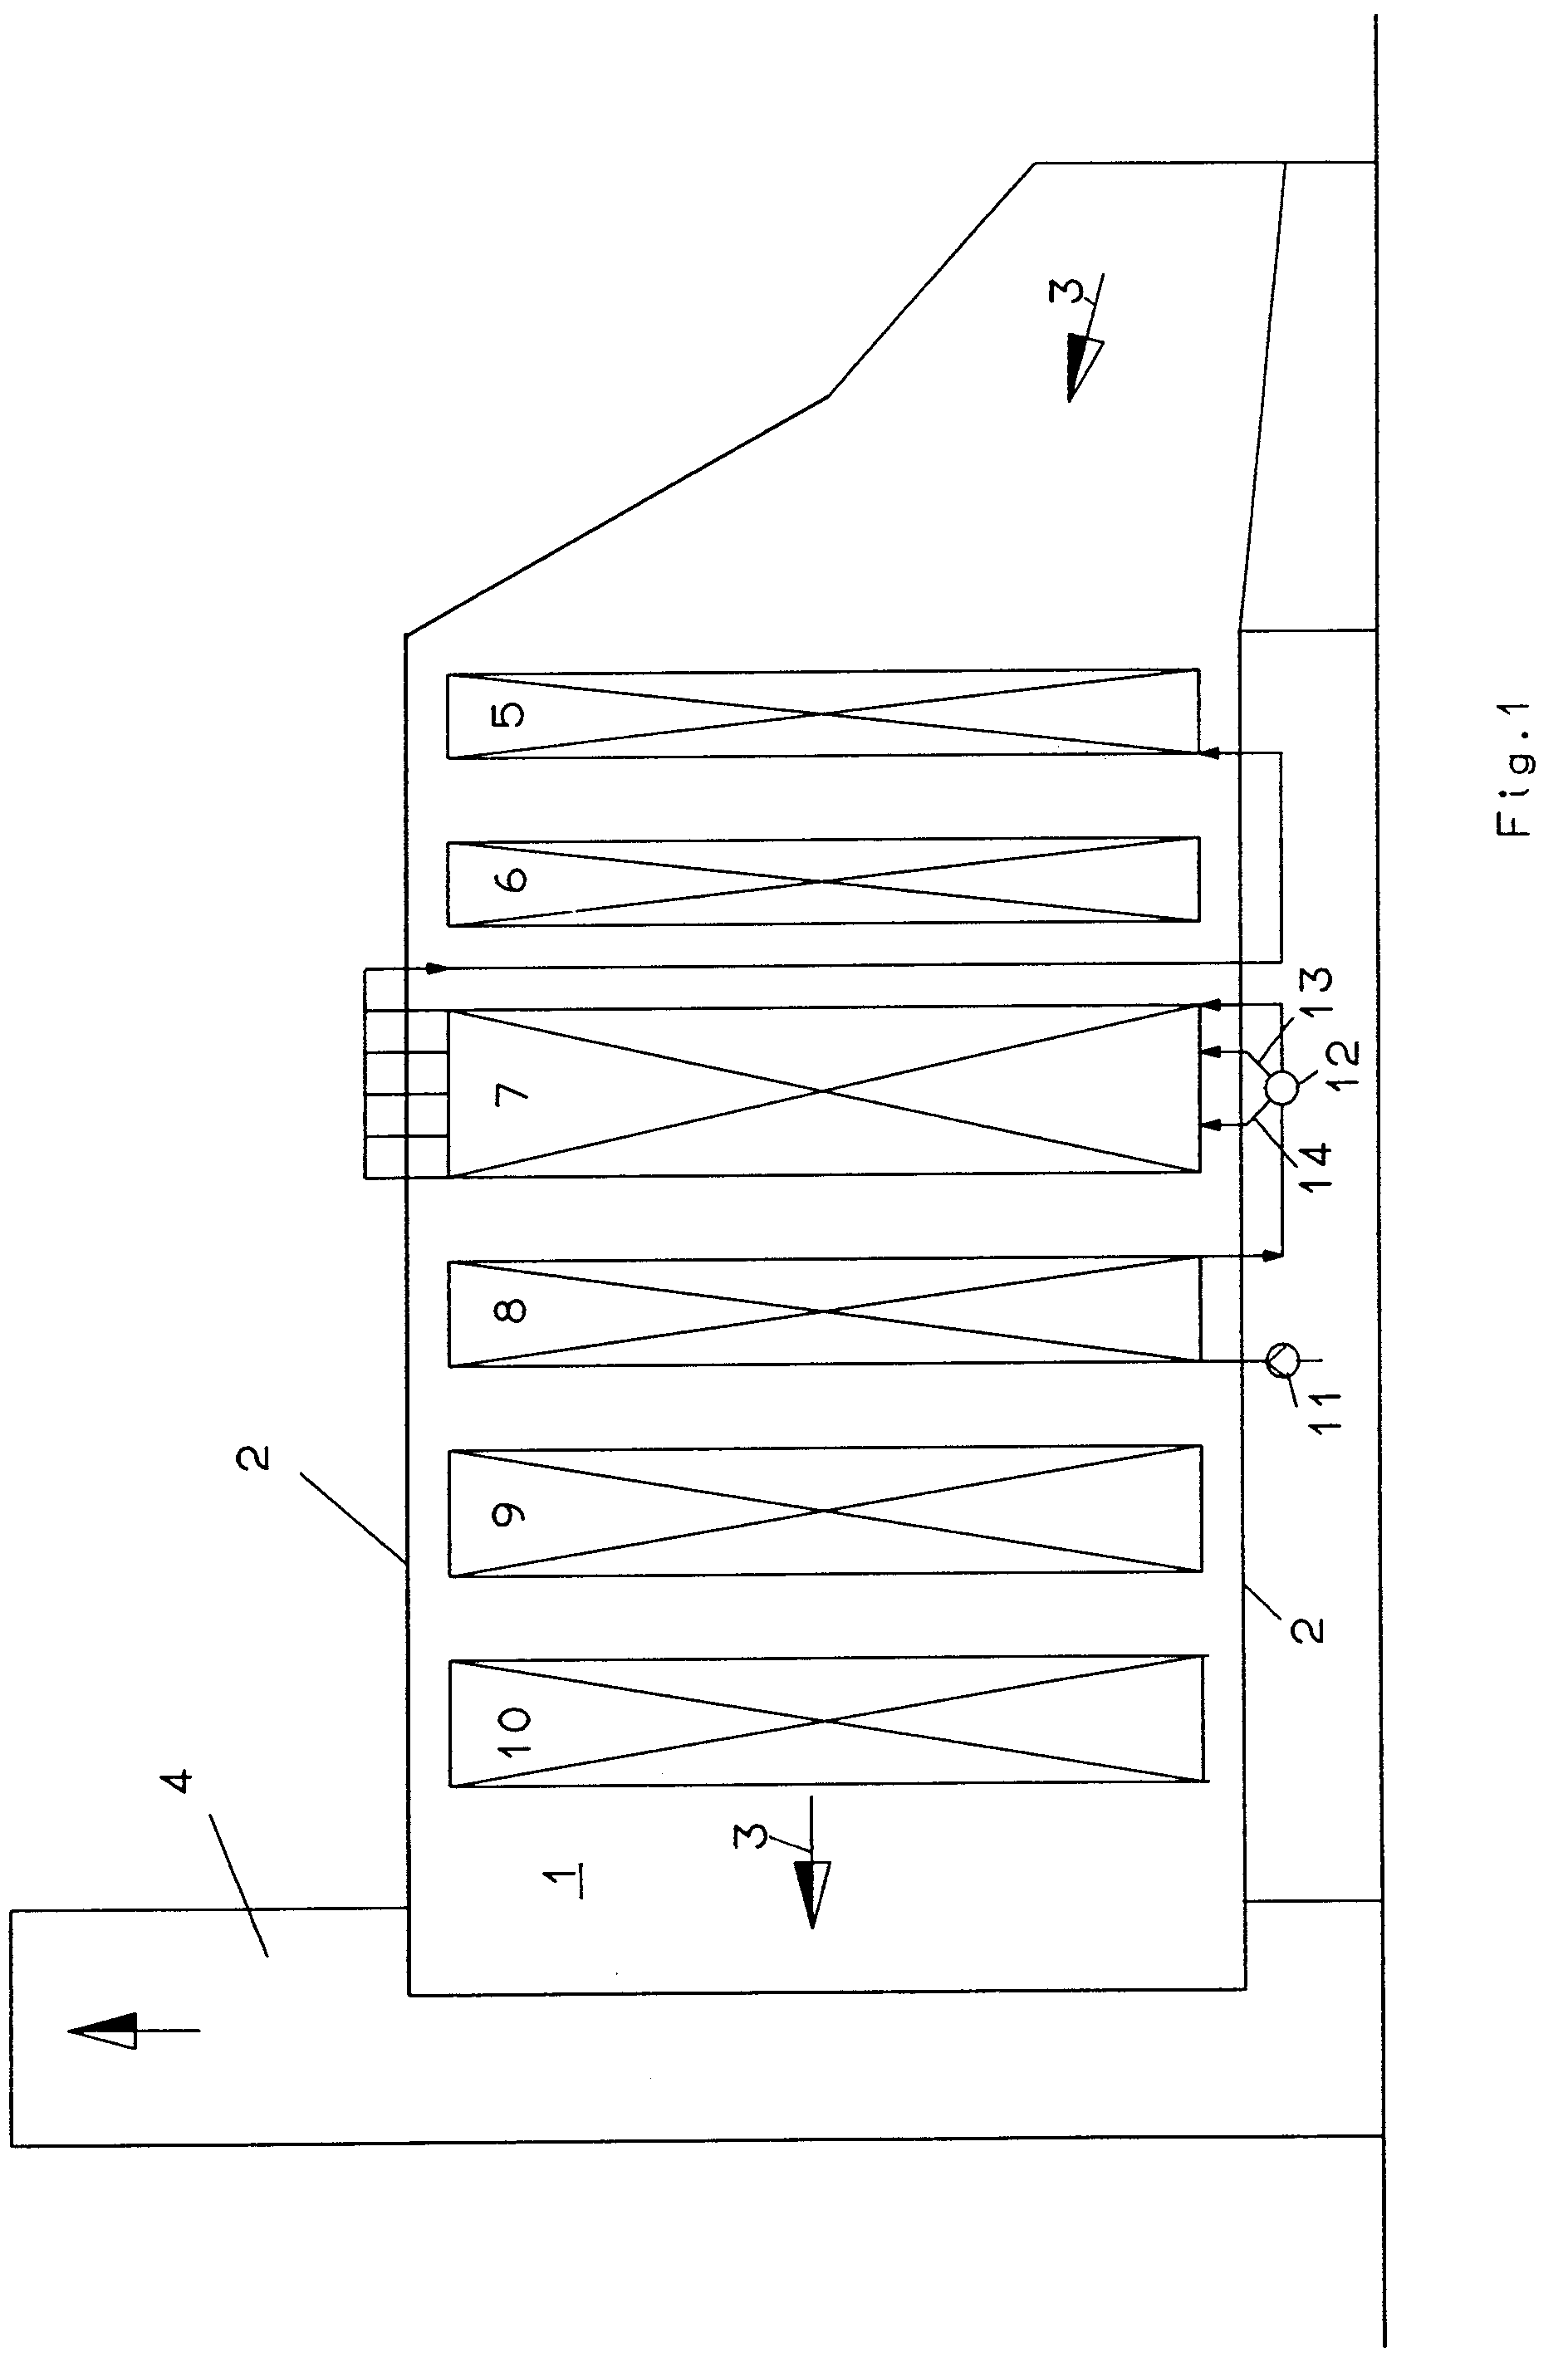 Patent EP A2 Steam generator with several tube bundles